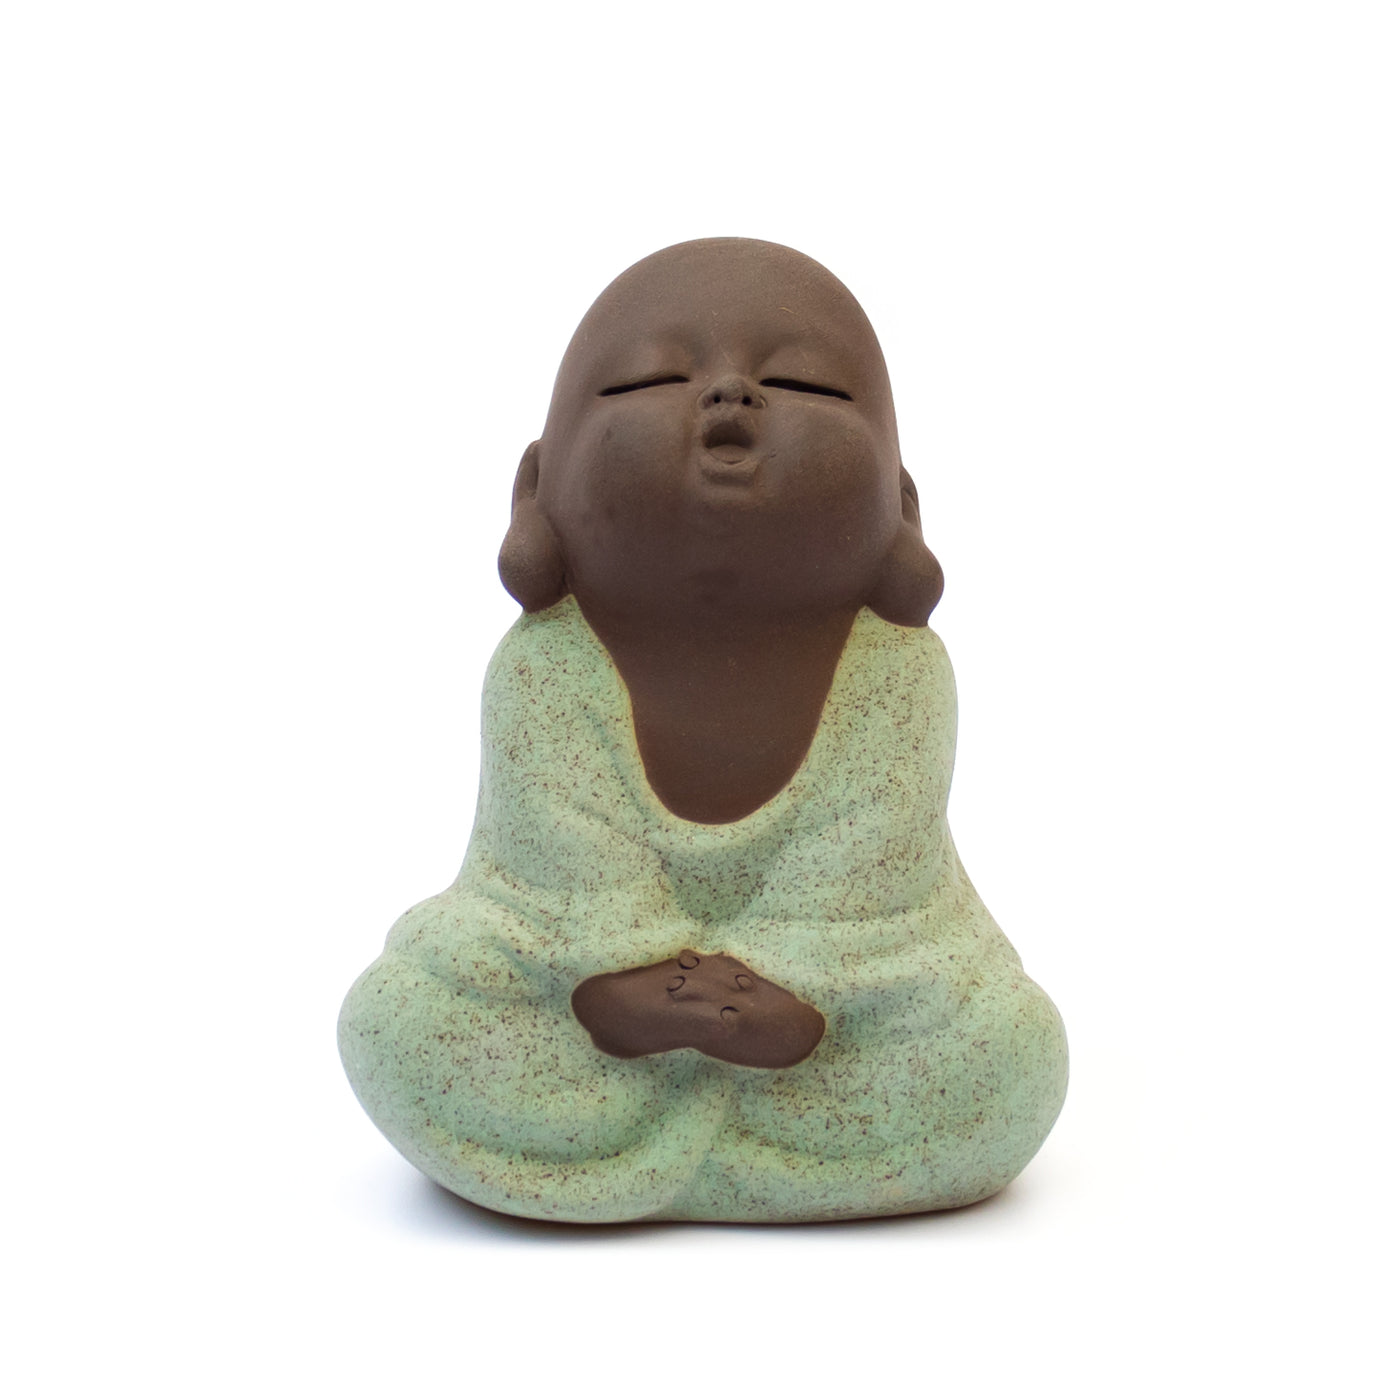 Small Buddha Statue - Om - Purple Clay Buddha - Meditation Statue